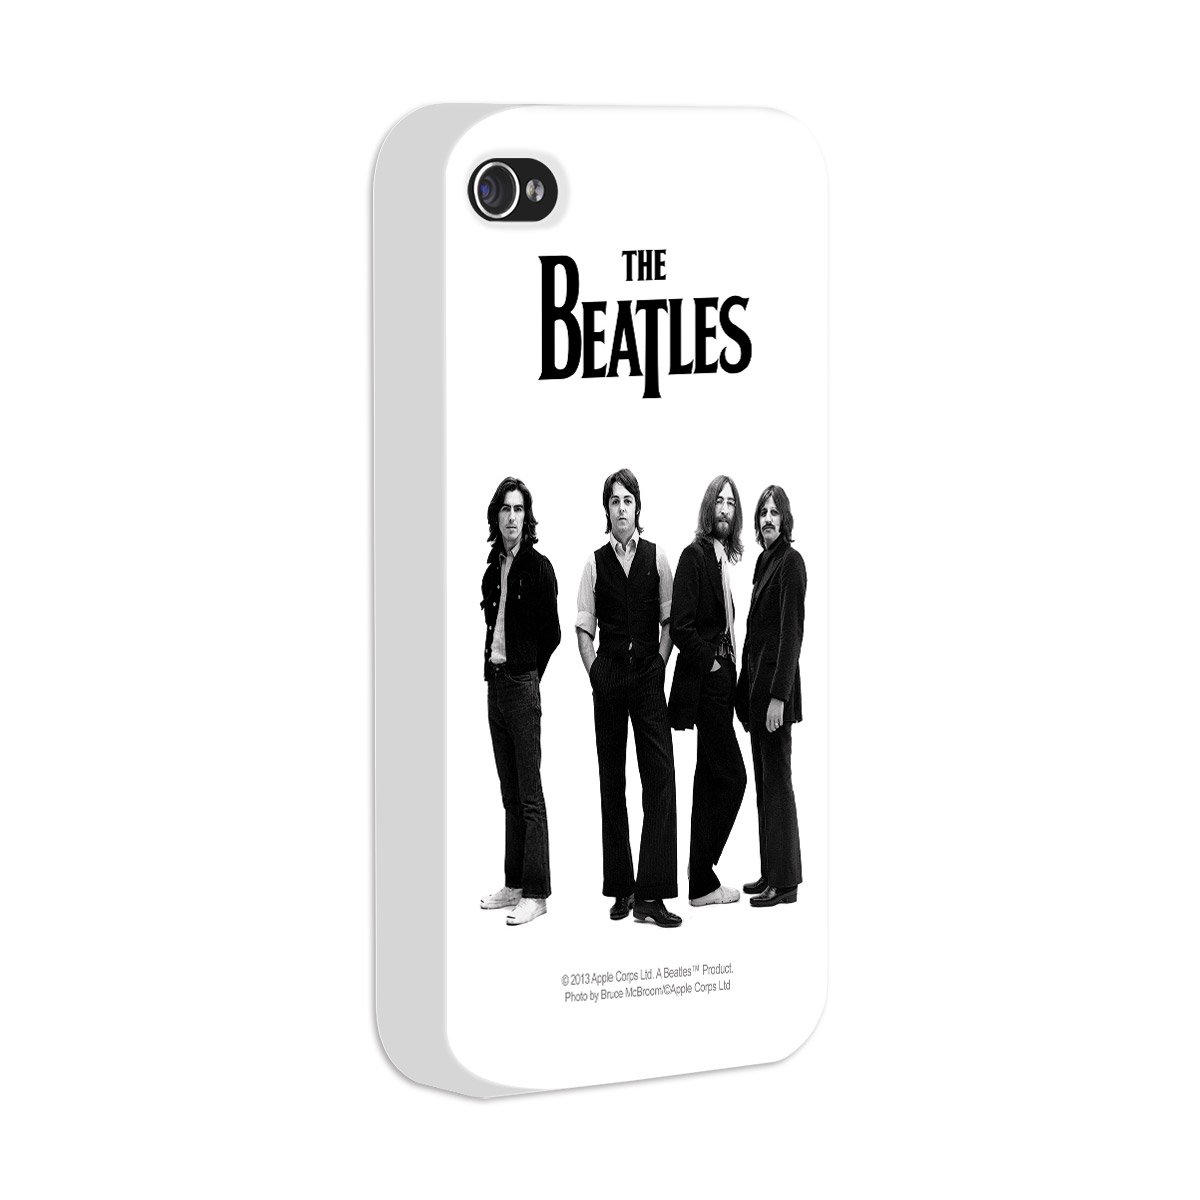 Capa de iPhone 4/4S The Beatles Anos 70